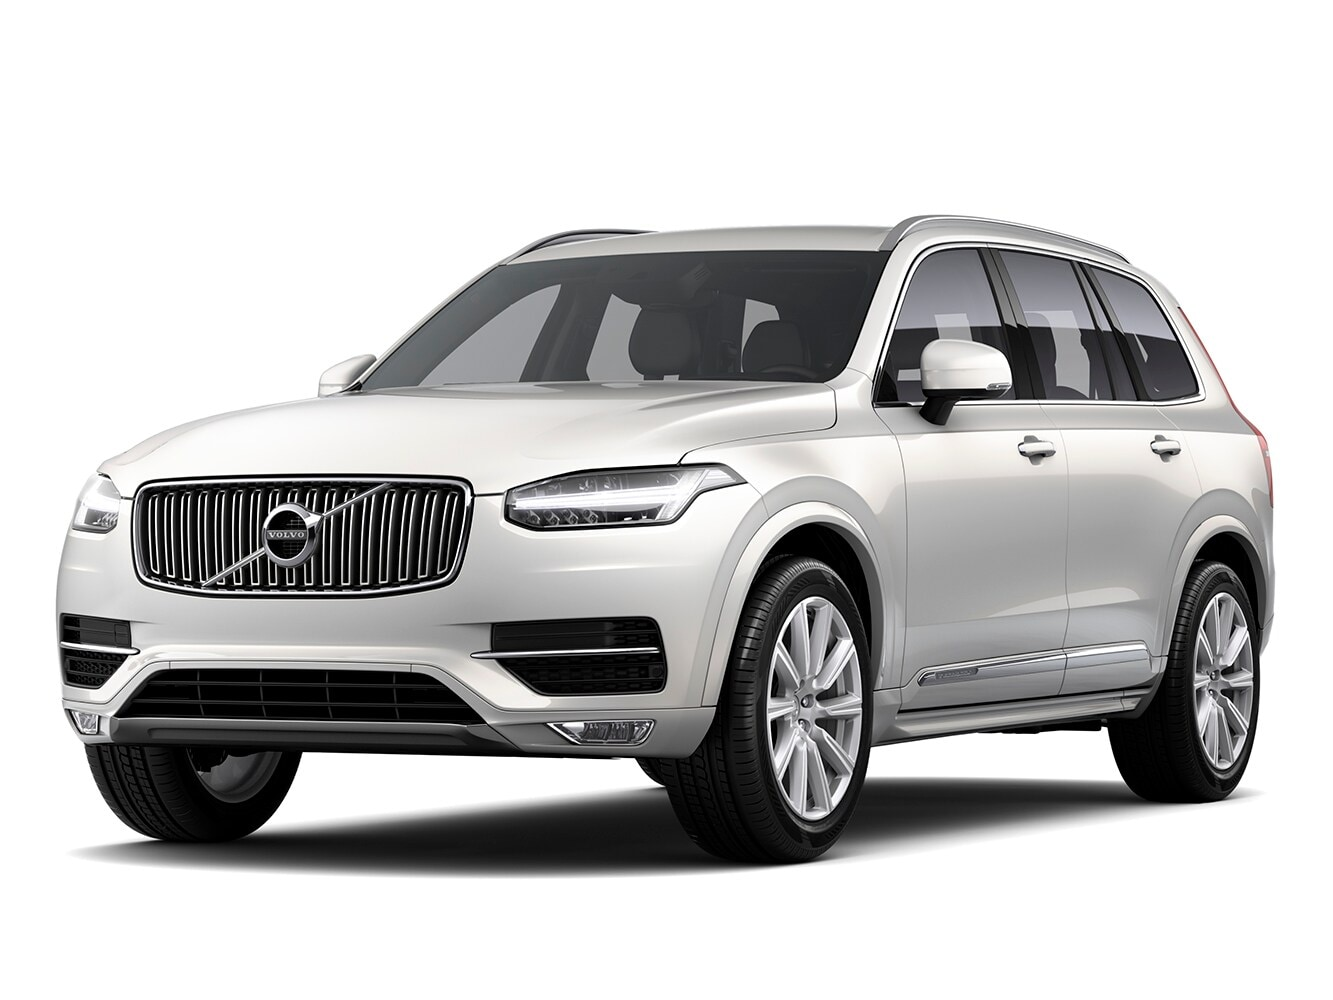 The Volvo XC90 Inscription trim